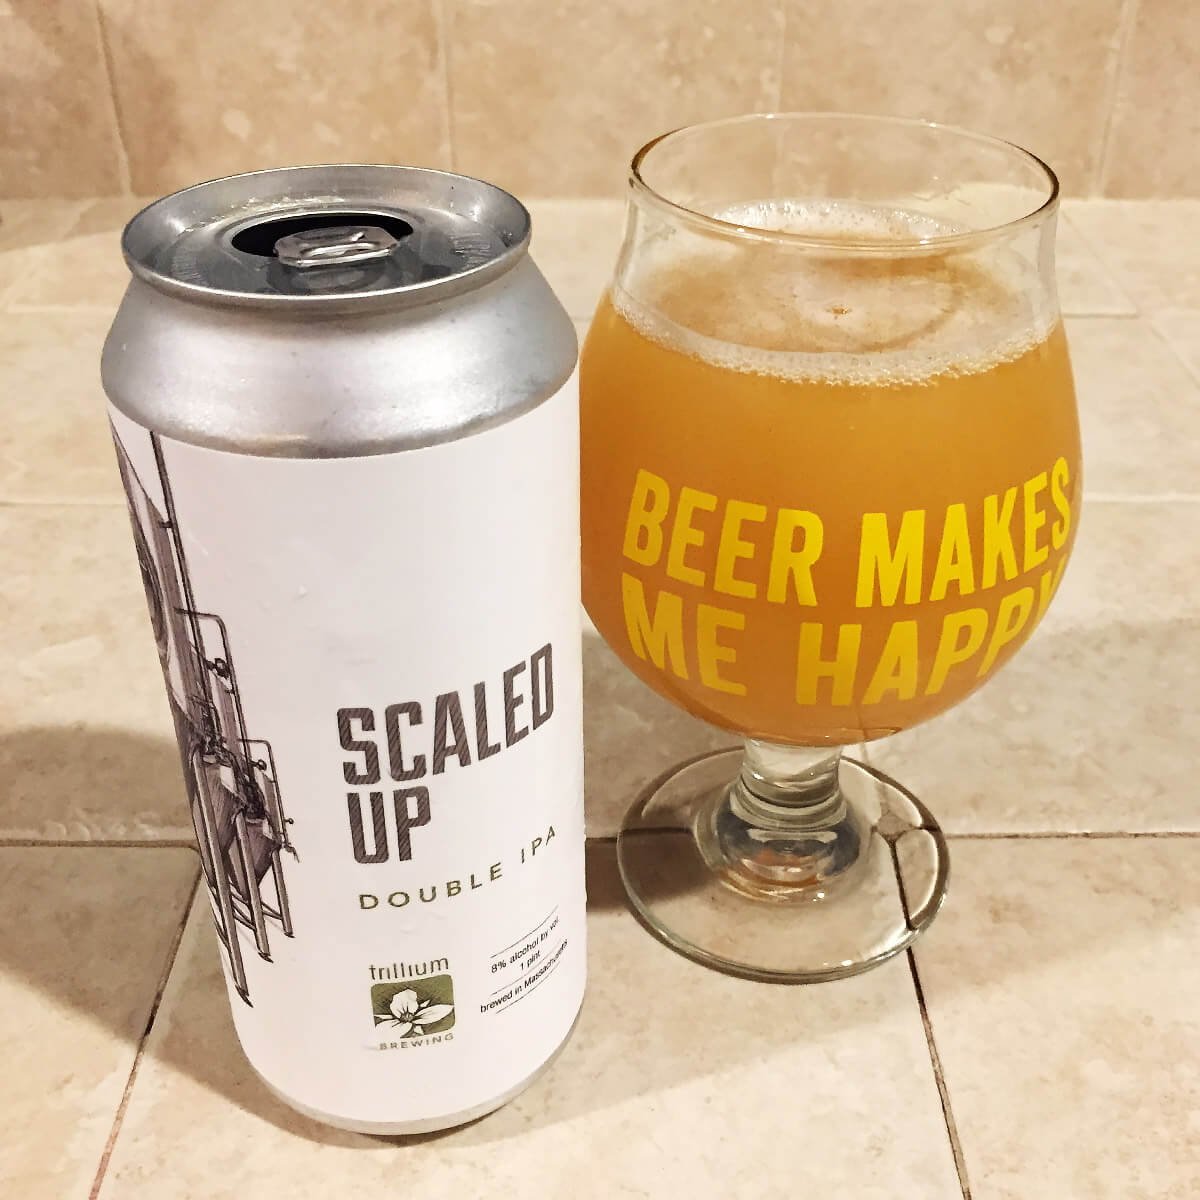 Scaled Up, an American Double IPA (in the New England style) by Trillium Brewing Company